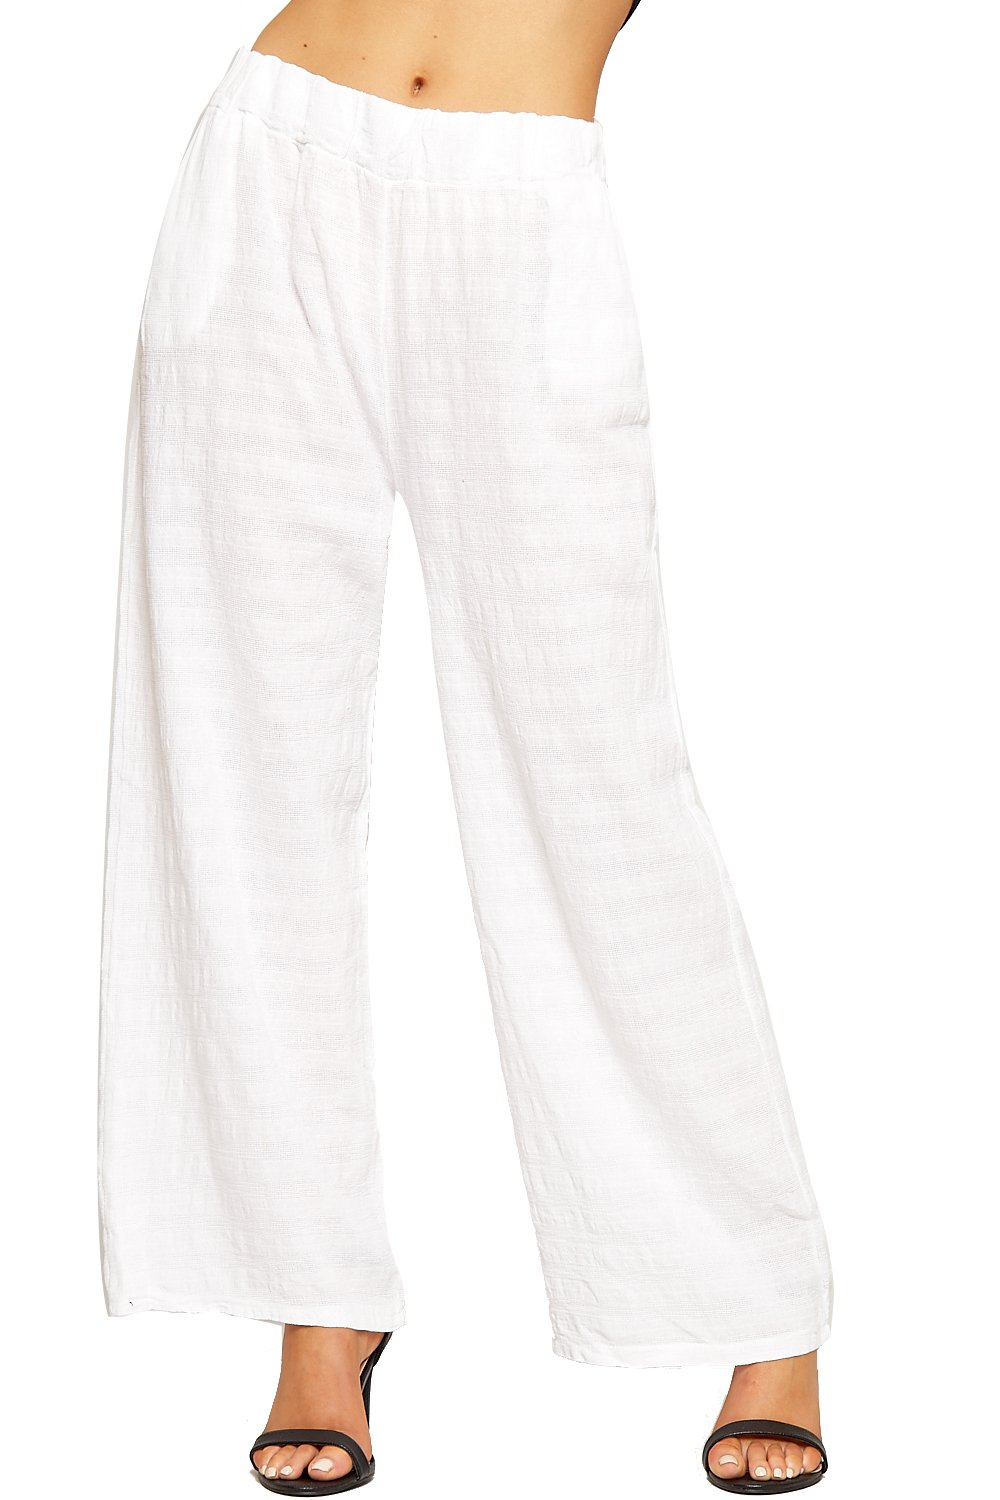 WEARALL Women's Baggy Linen Trousers Pants Ladies Elasticated Wide Leg  Flared Stretch New 8-14: Amazon.co.uk: Clothing